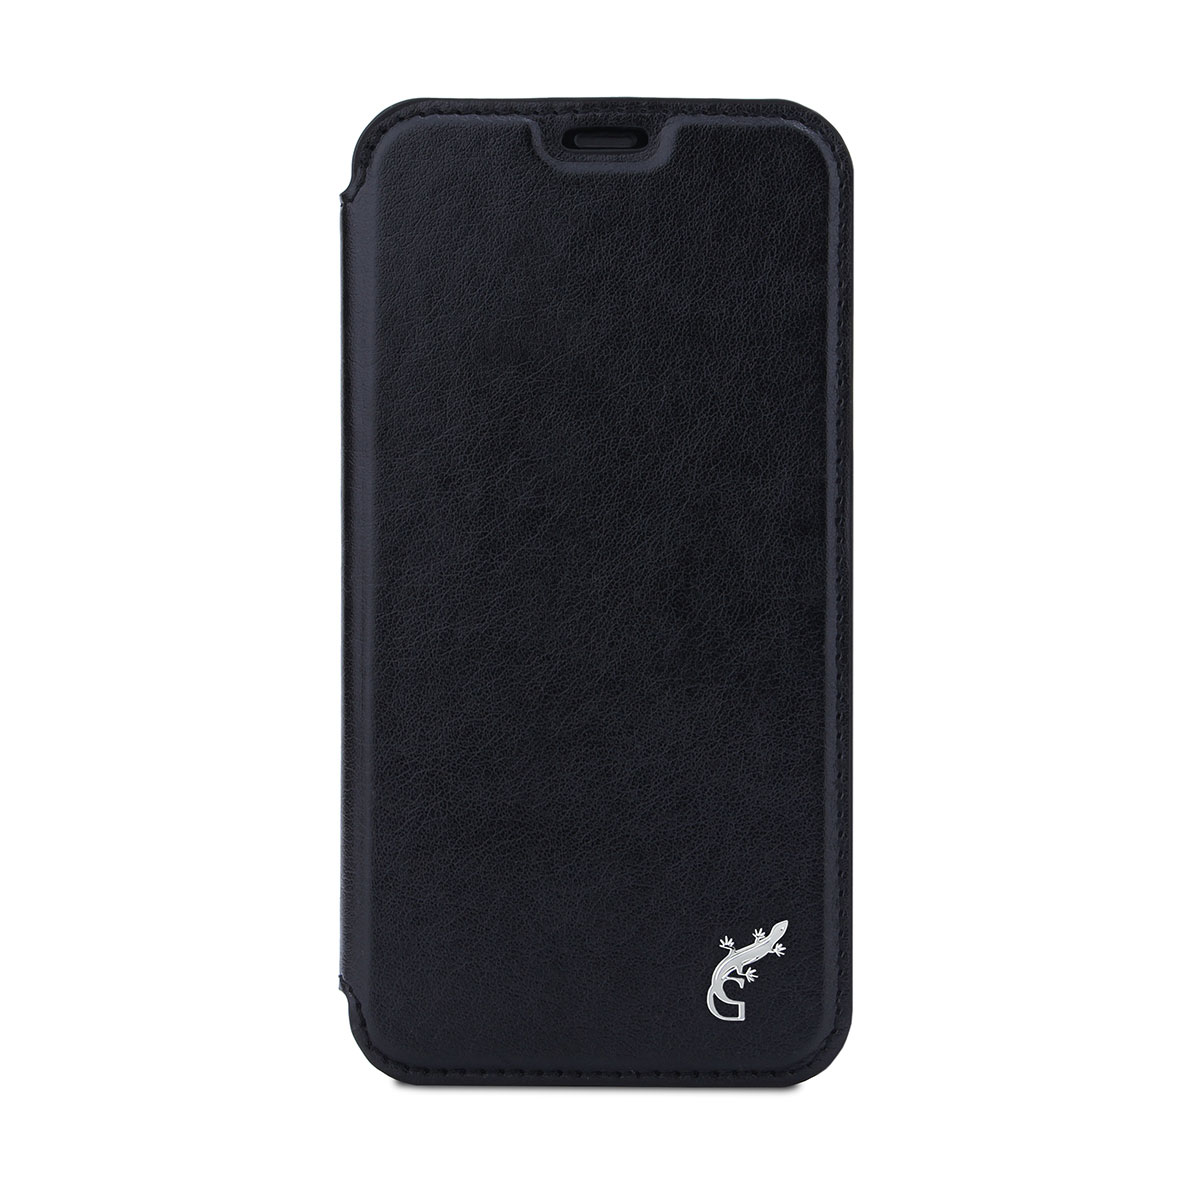 Чехол G-Case для APPLE iPhone 11 Slim Premium Black GG-1147